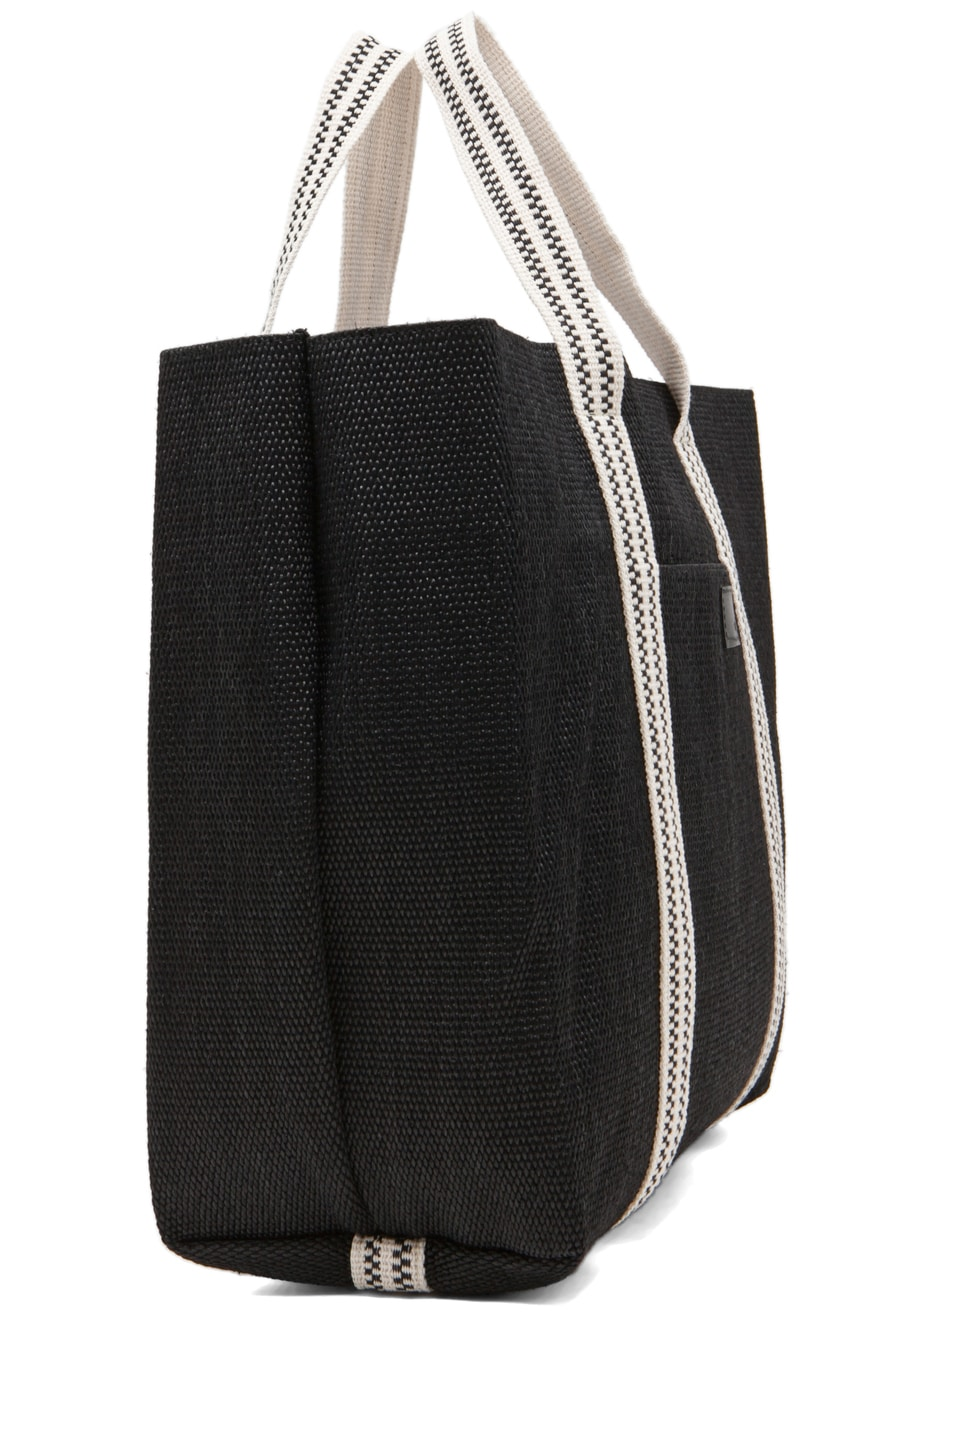 Chloe Borsa Beach Bag in Black | FWRD